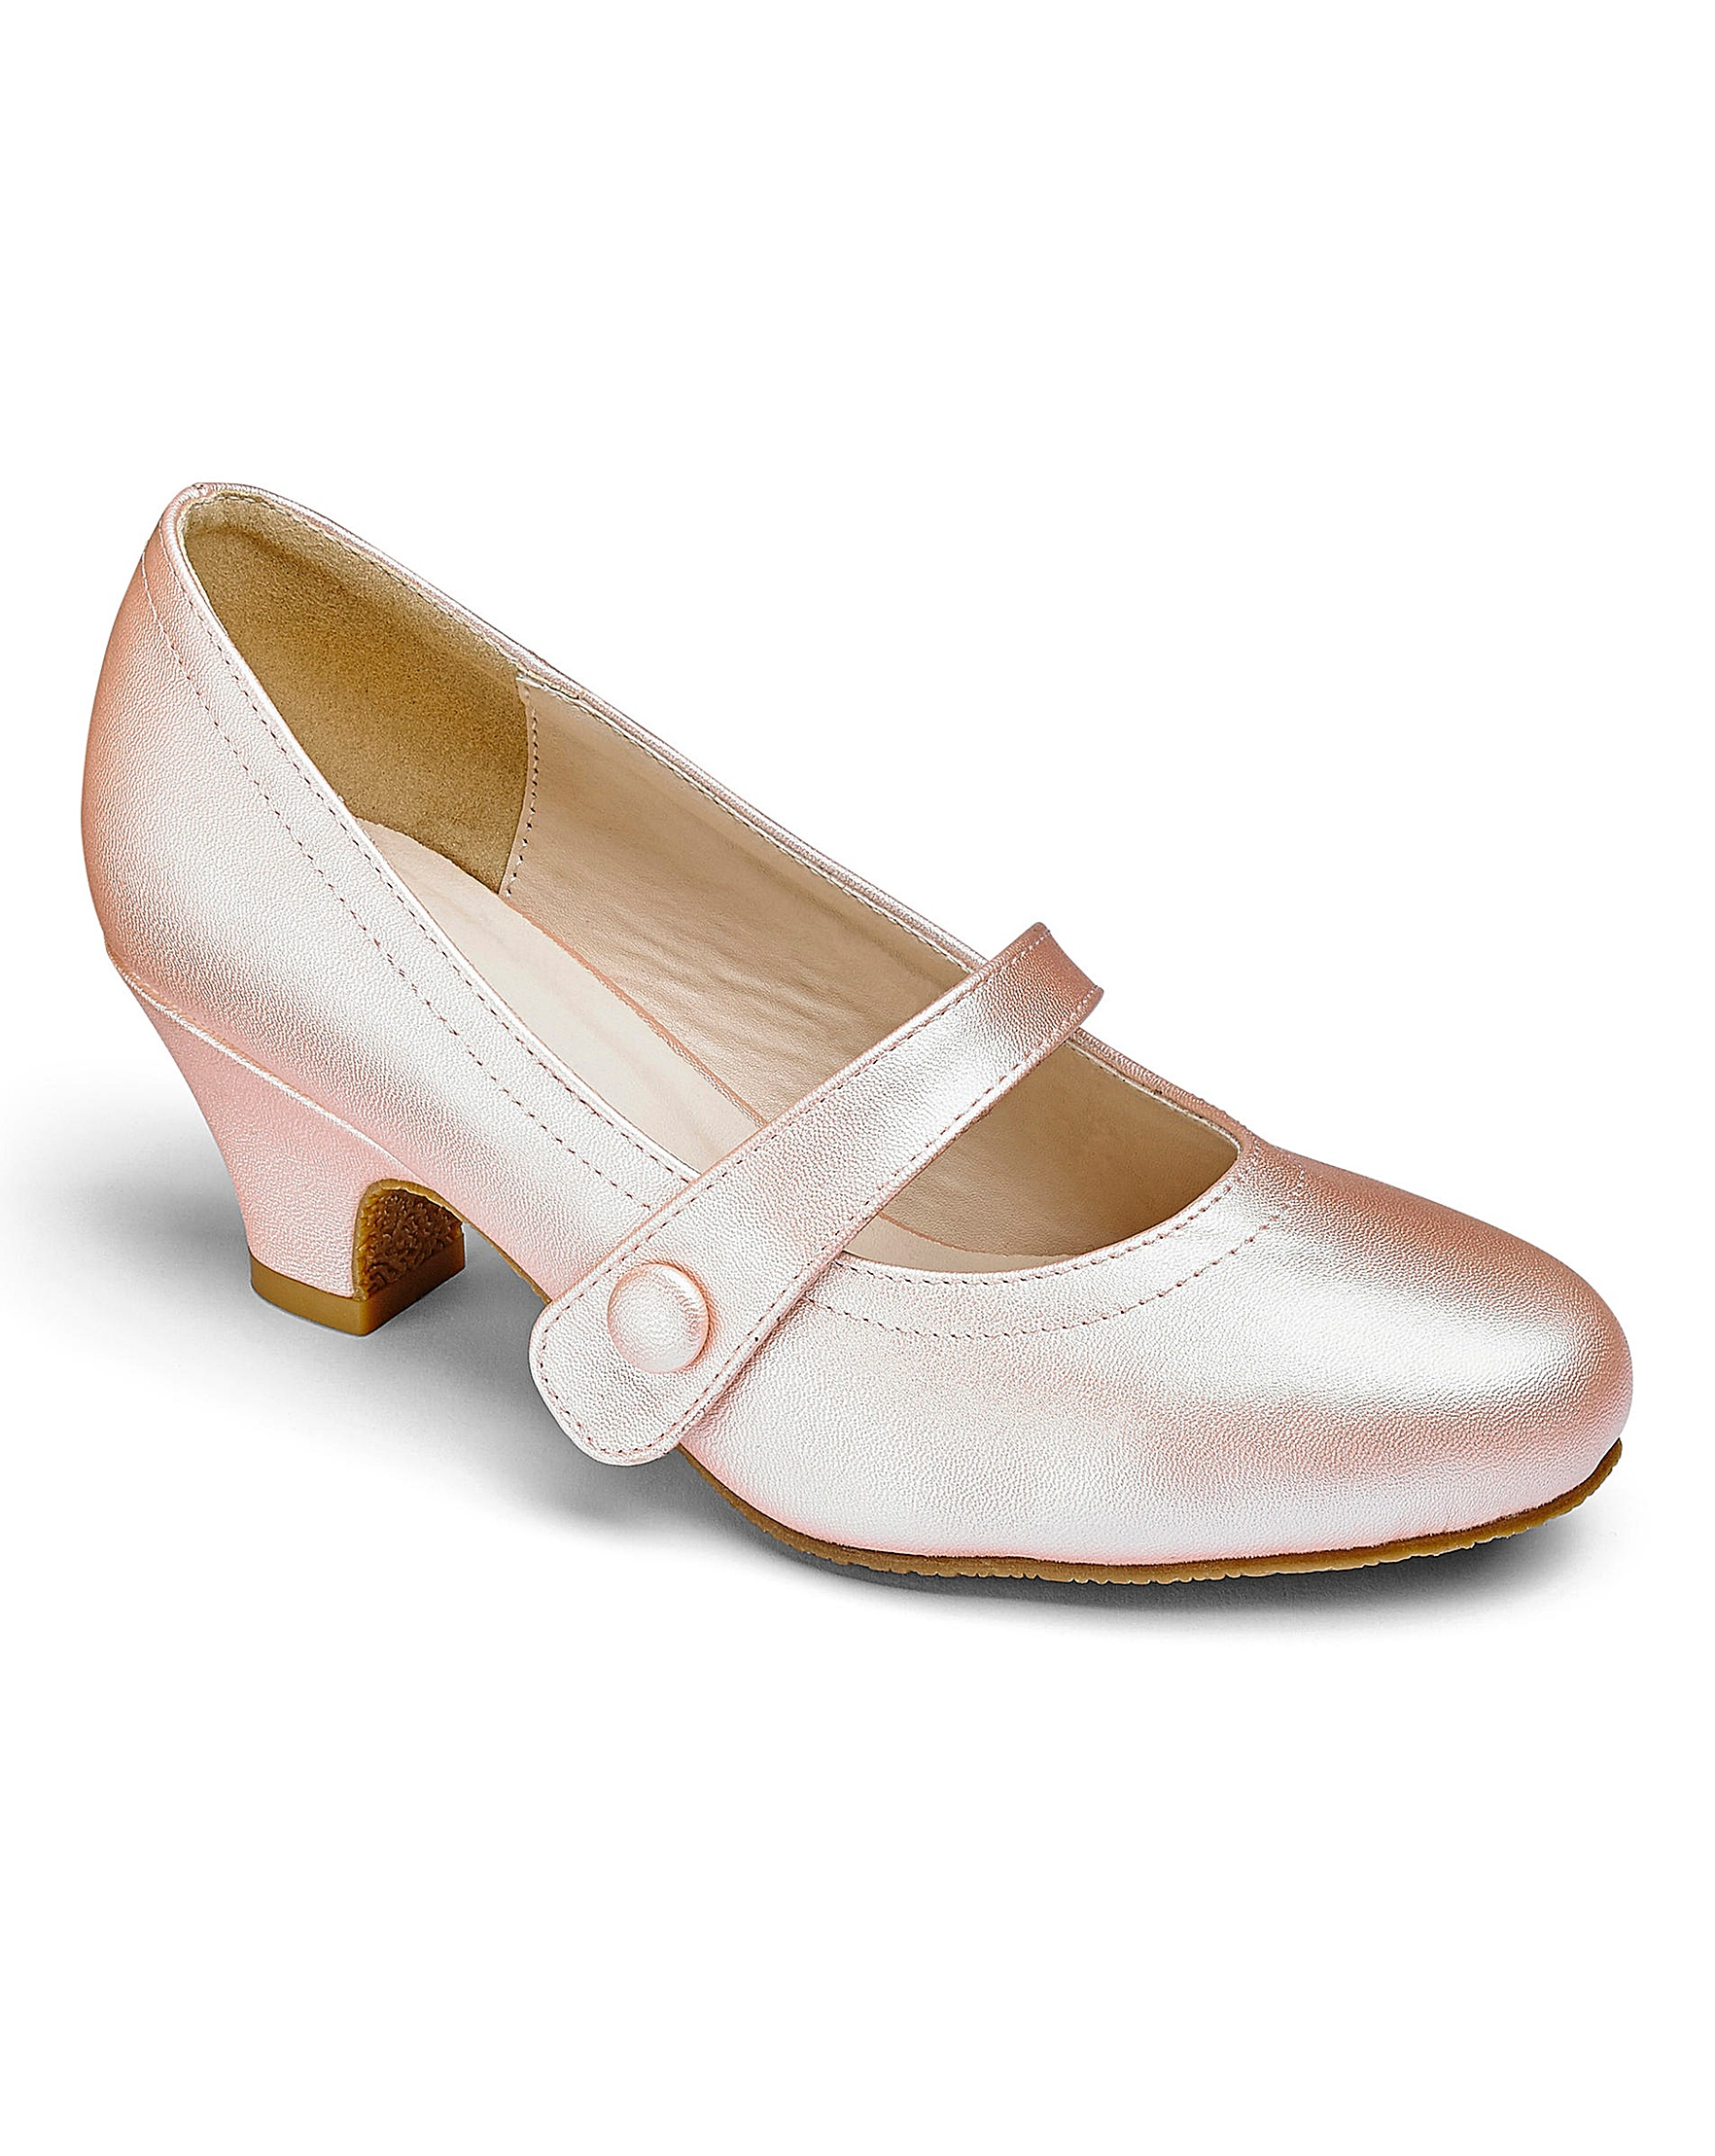 c8fcc93bb1a4 Mary Jane Shoes D Fit | Fashion World